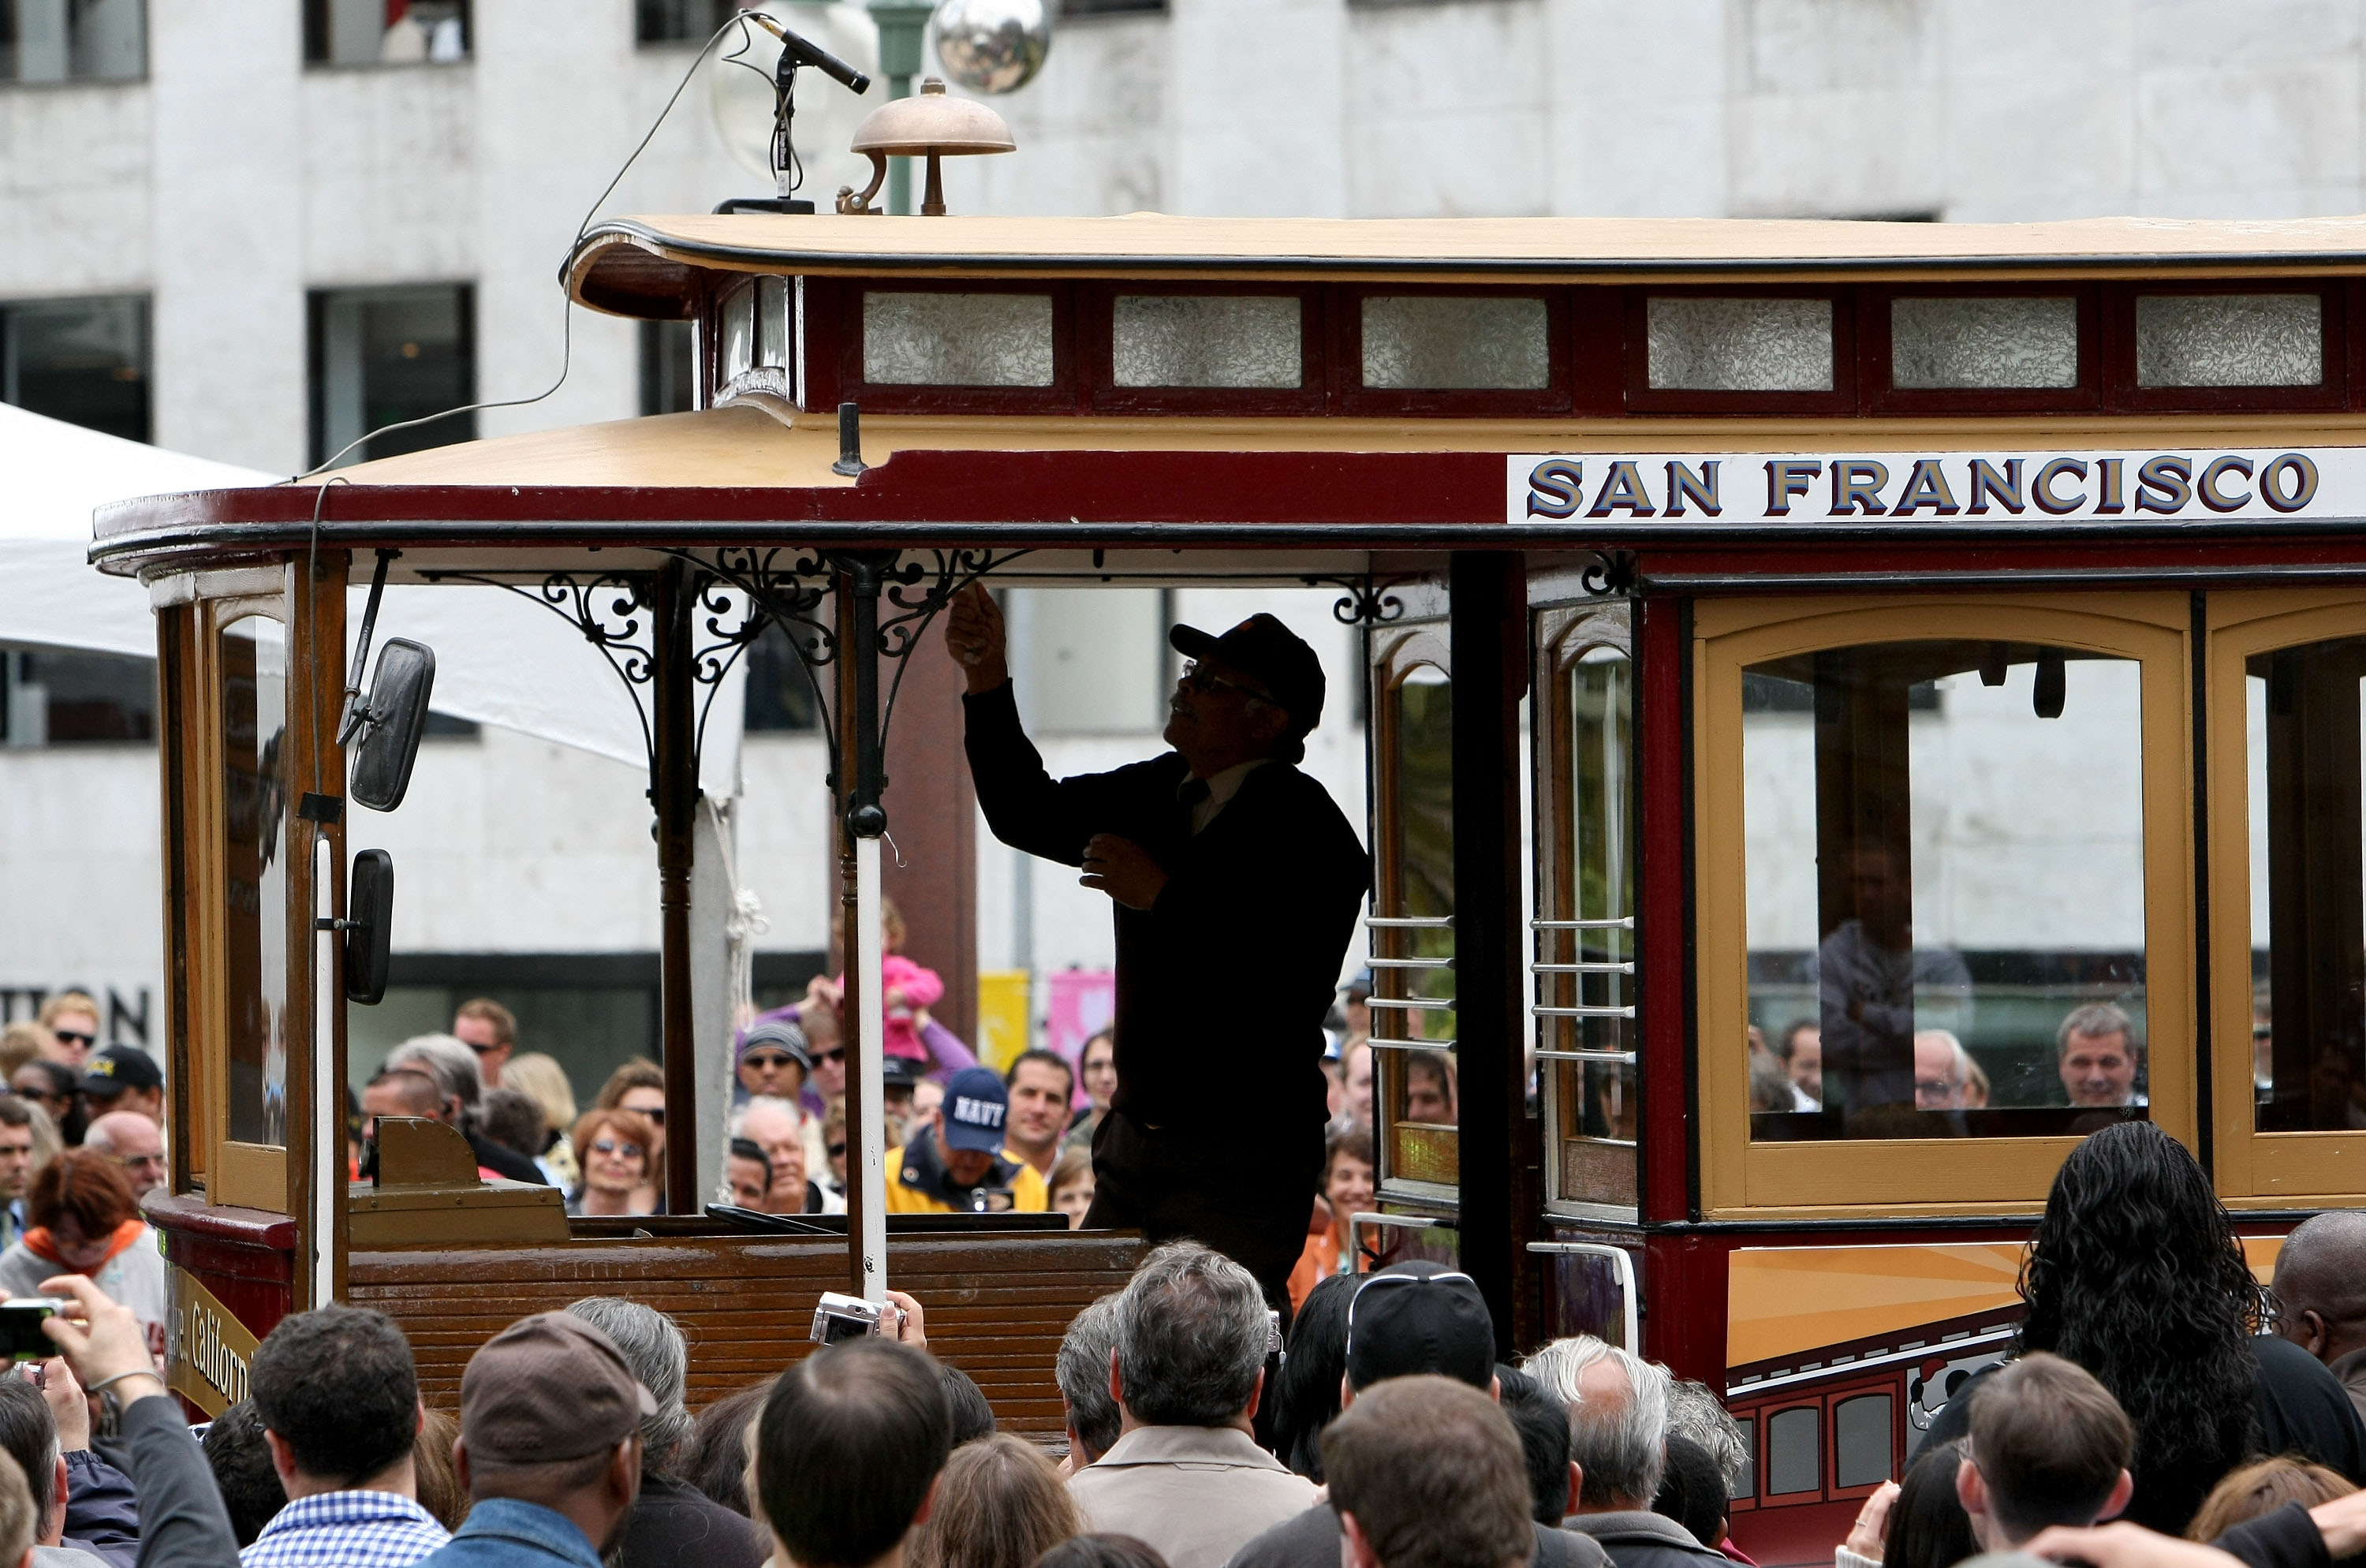 San Francisco Hosts Cable Car Bell Ringing Contest